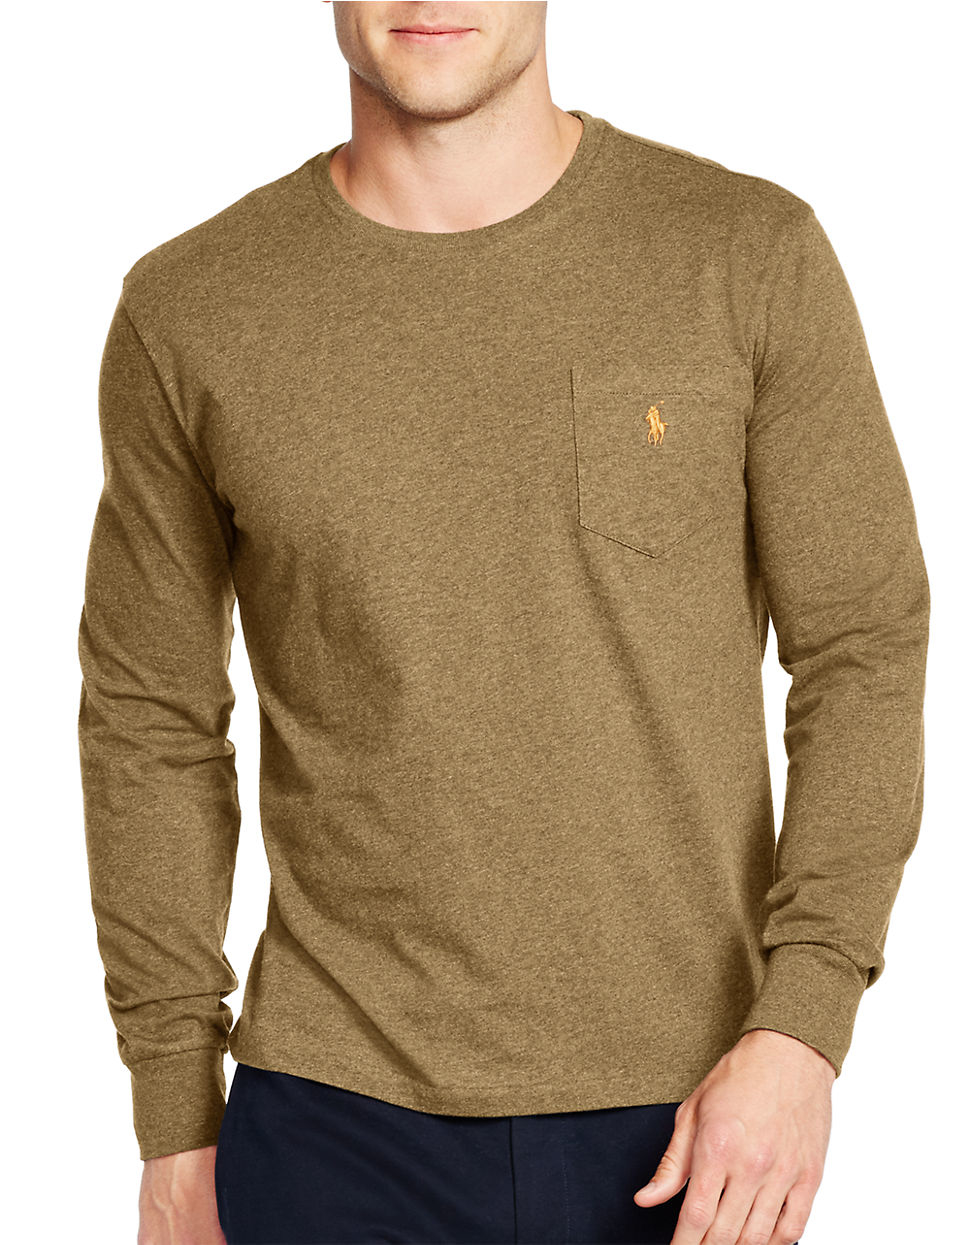 polo ralph lauren long sleeve jersey crewneck shirt in green for men lyst. Black Bedroom Furniture Sets. Home Design Ideas